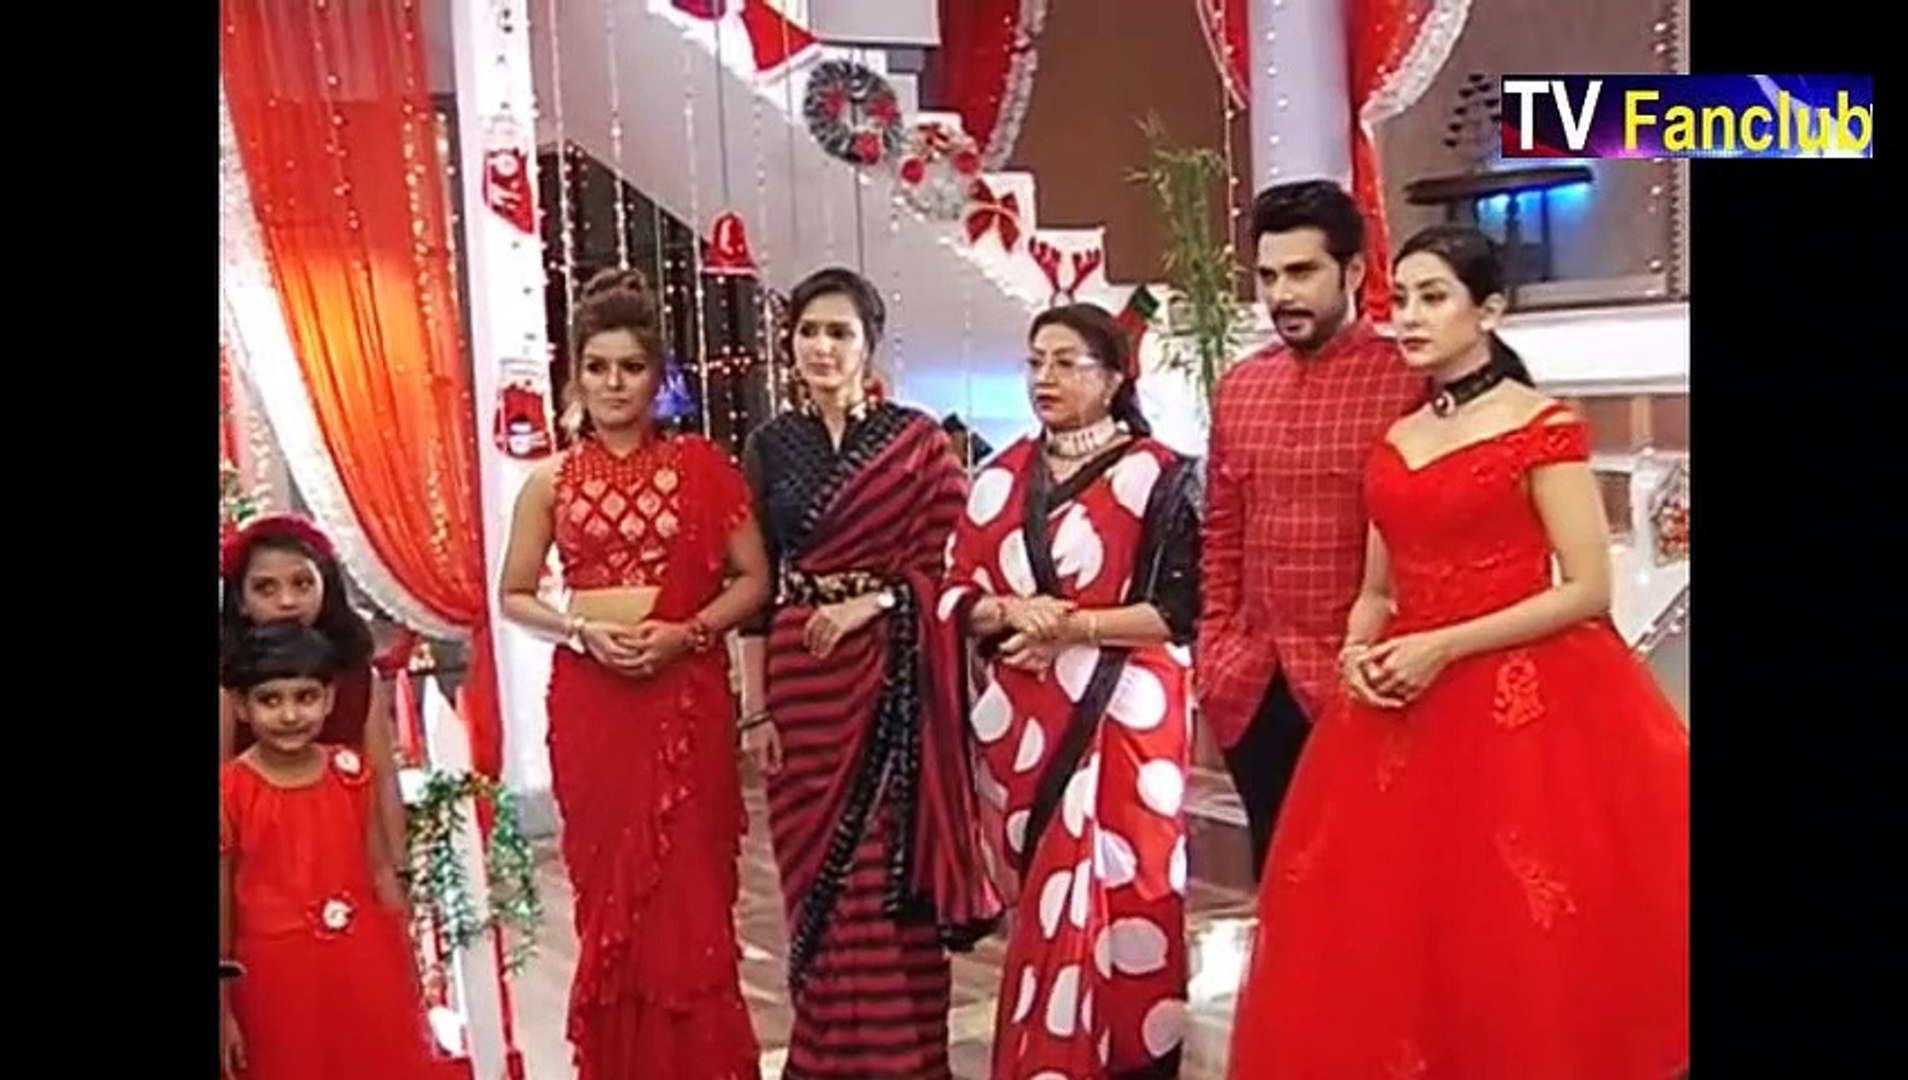 Yeh Rishta Kya Kehlata Hai : 2 January 2020 Full Episode shoot - Kartik - Naira's Christmas l 3